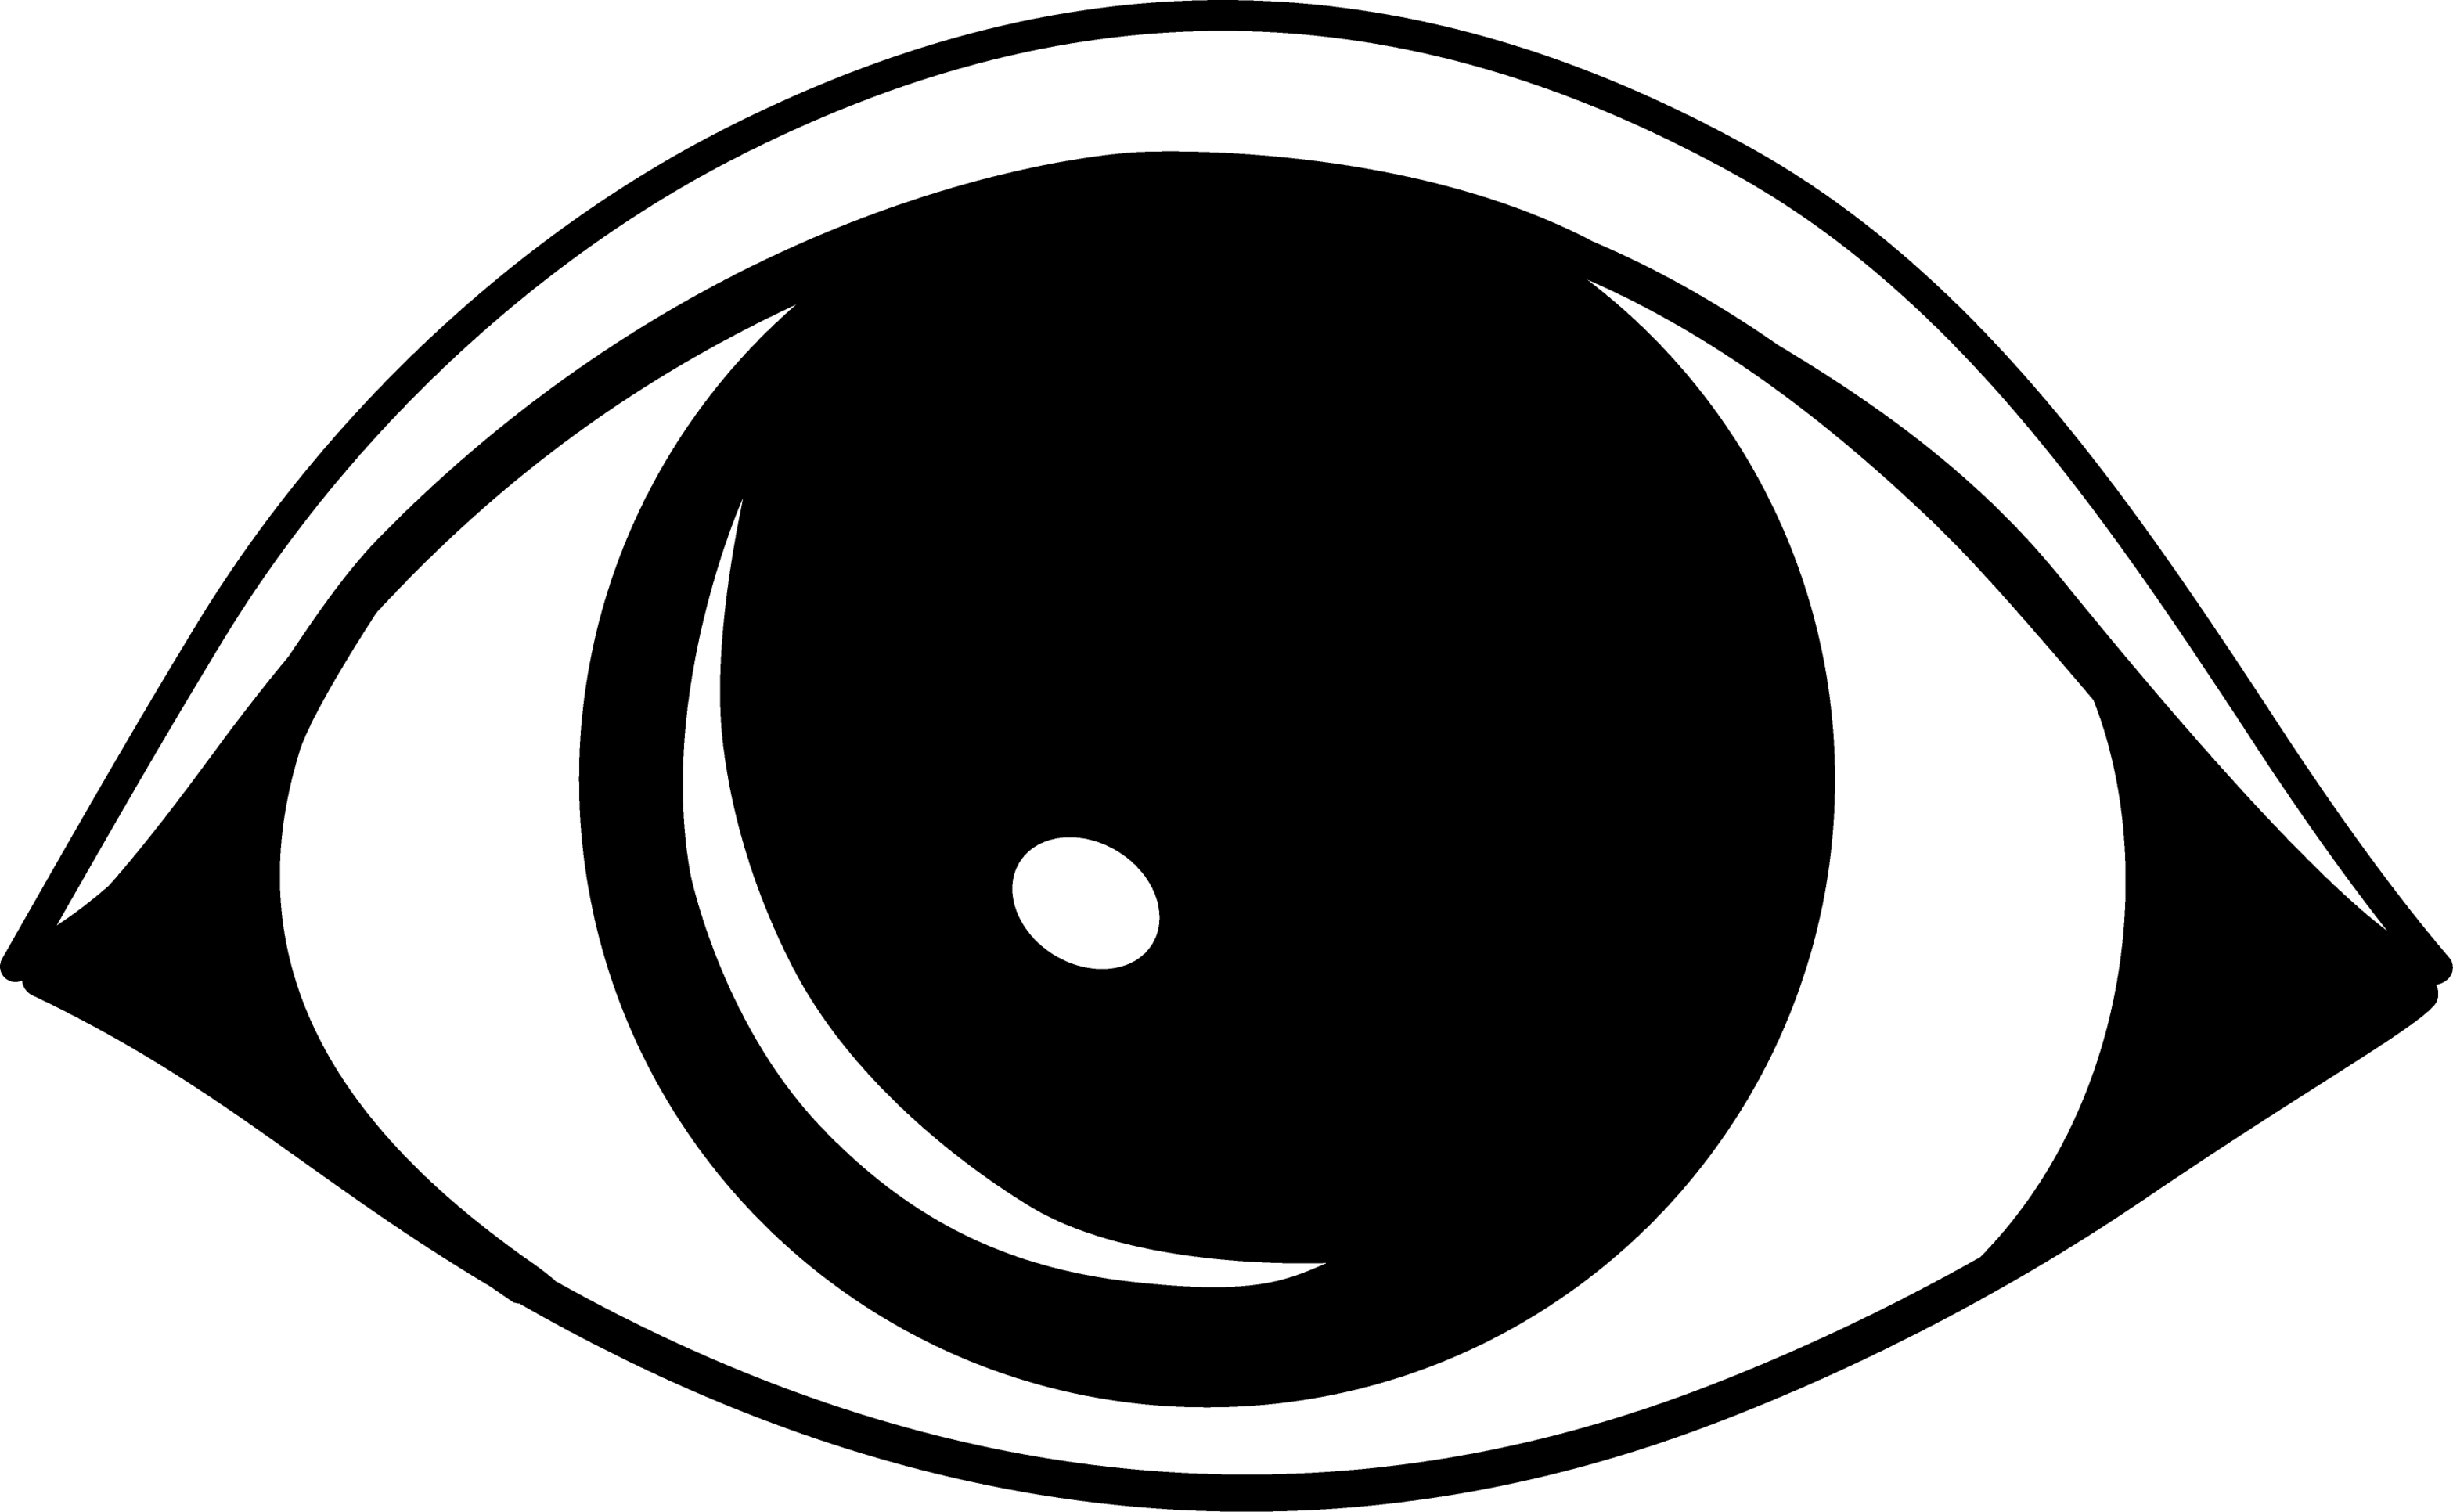 Eyes Cartoon Black And White - ClipArt Best